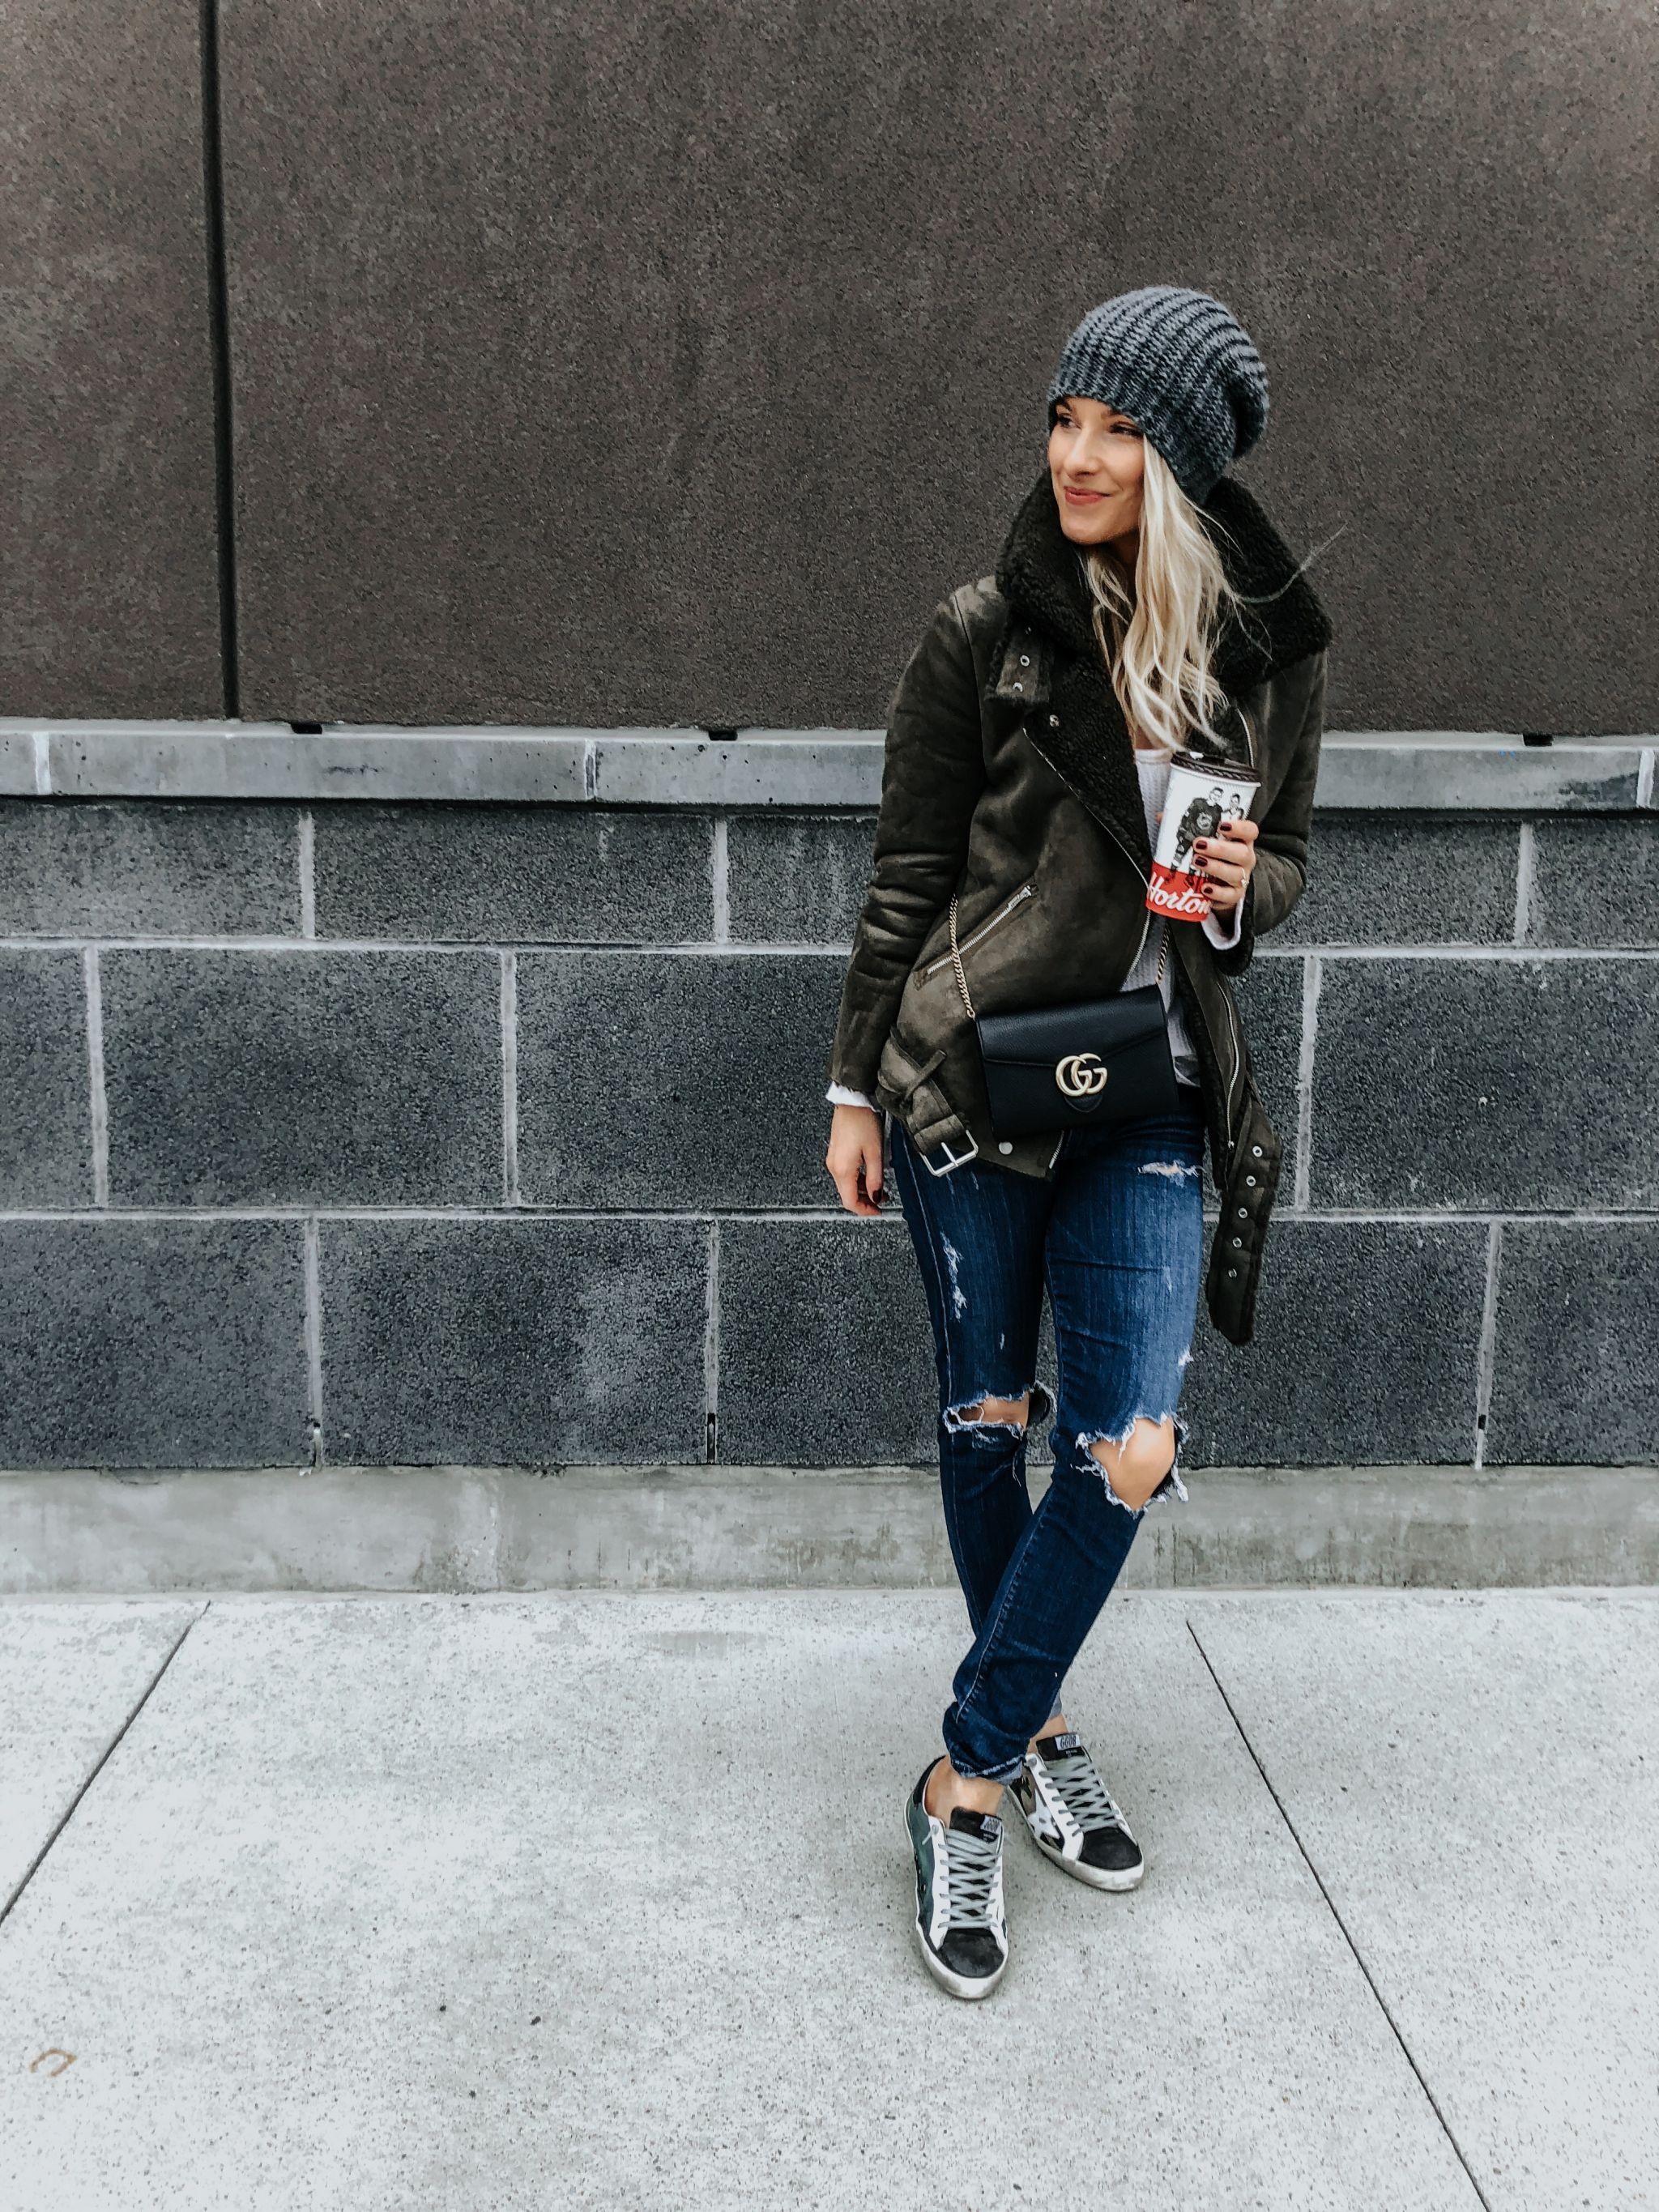 1 person, girl wearing cute fall outfit with sneakers